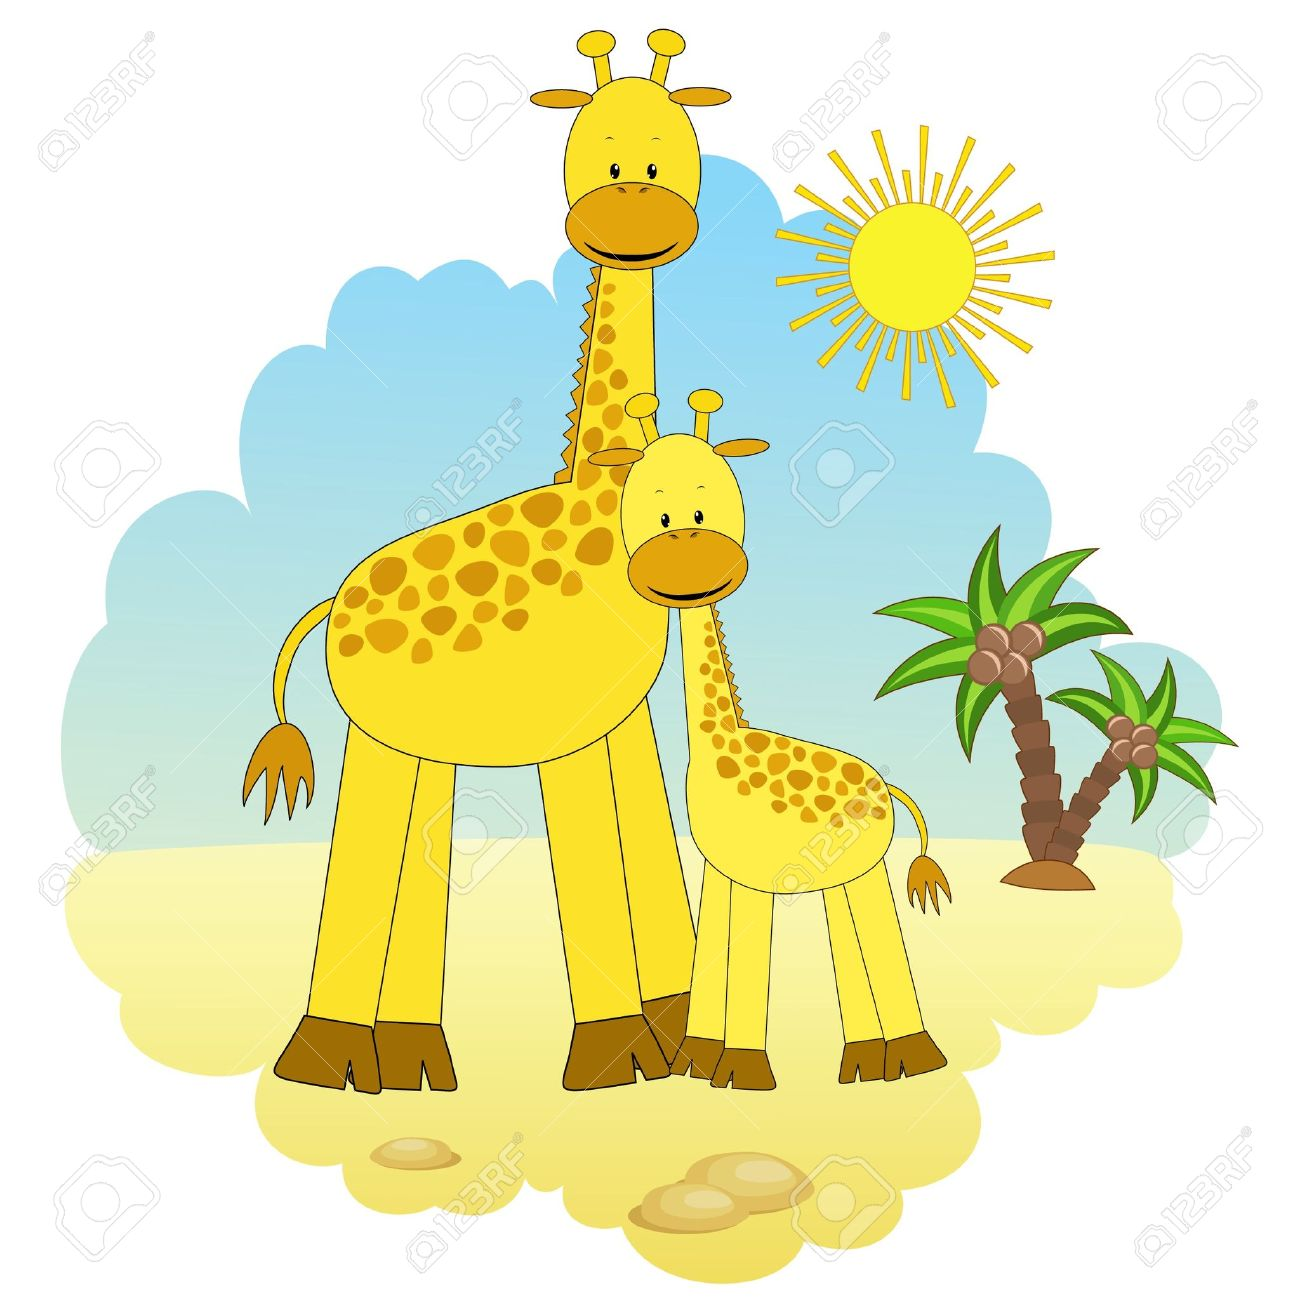 mother giraffe and baby giraffe royalty free cliparts vectors